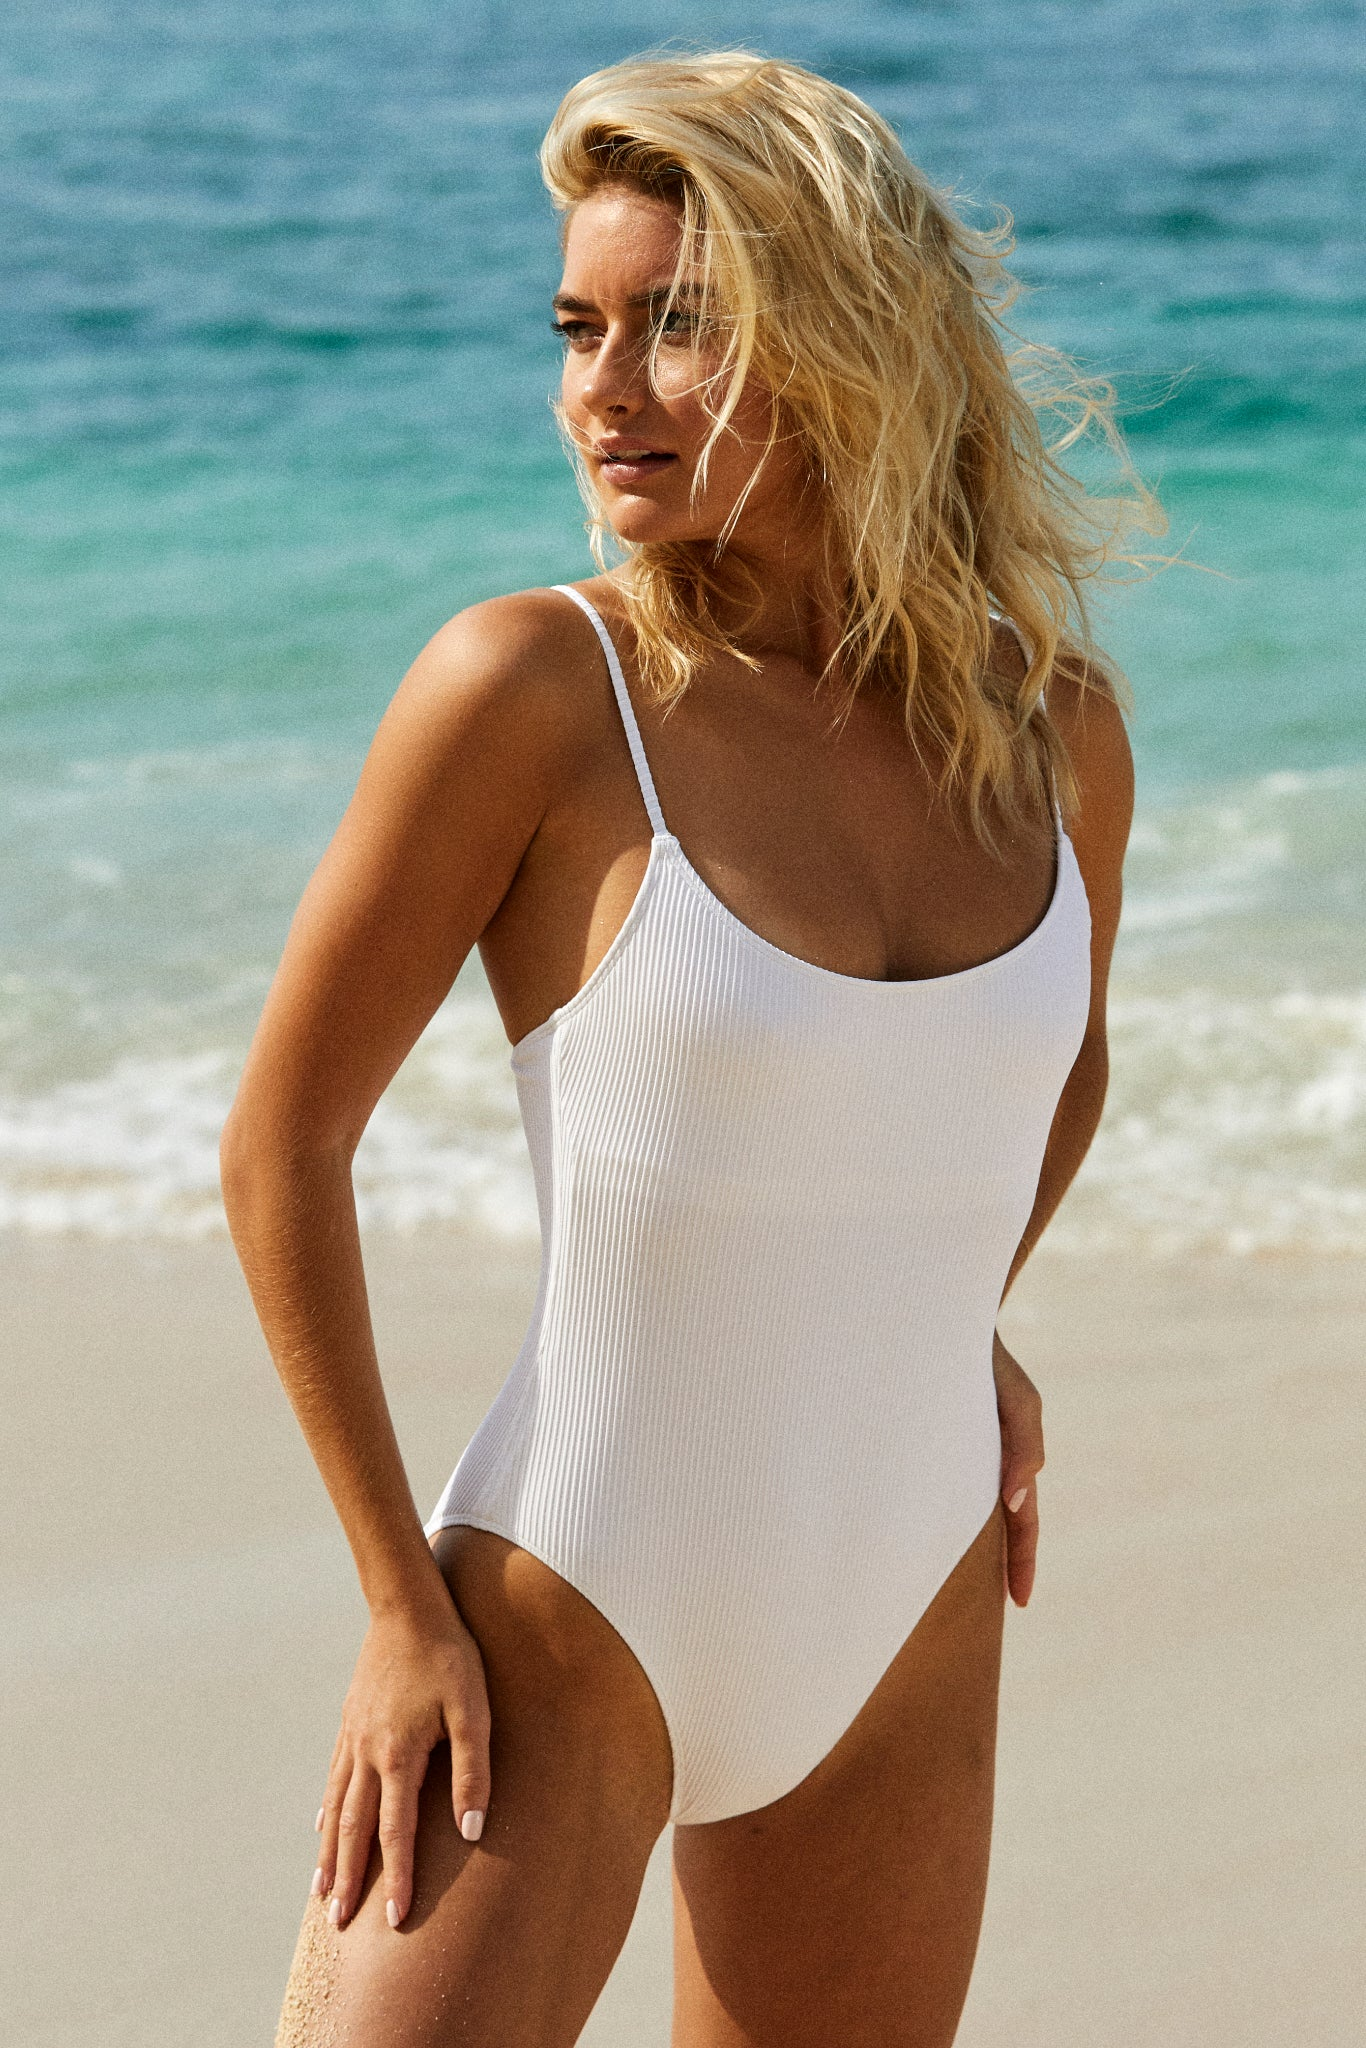 Load image into Gallery viewer, Bahamas One Piece - White Rib